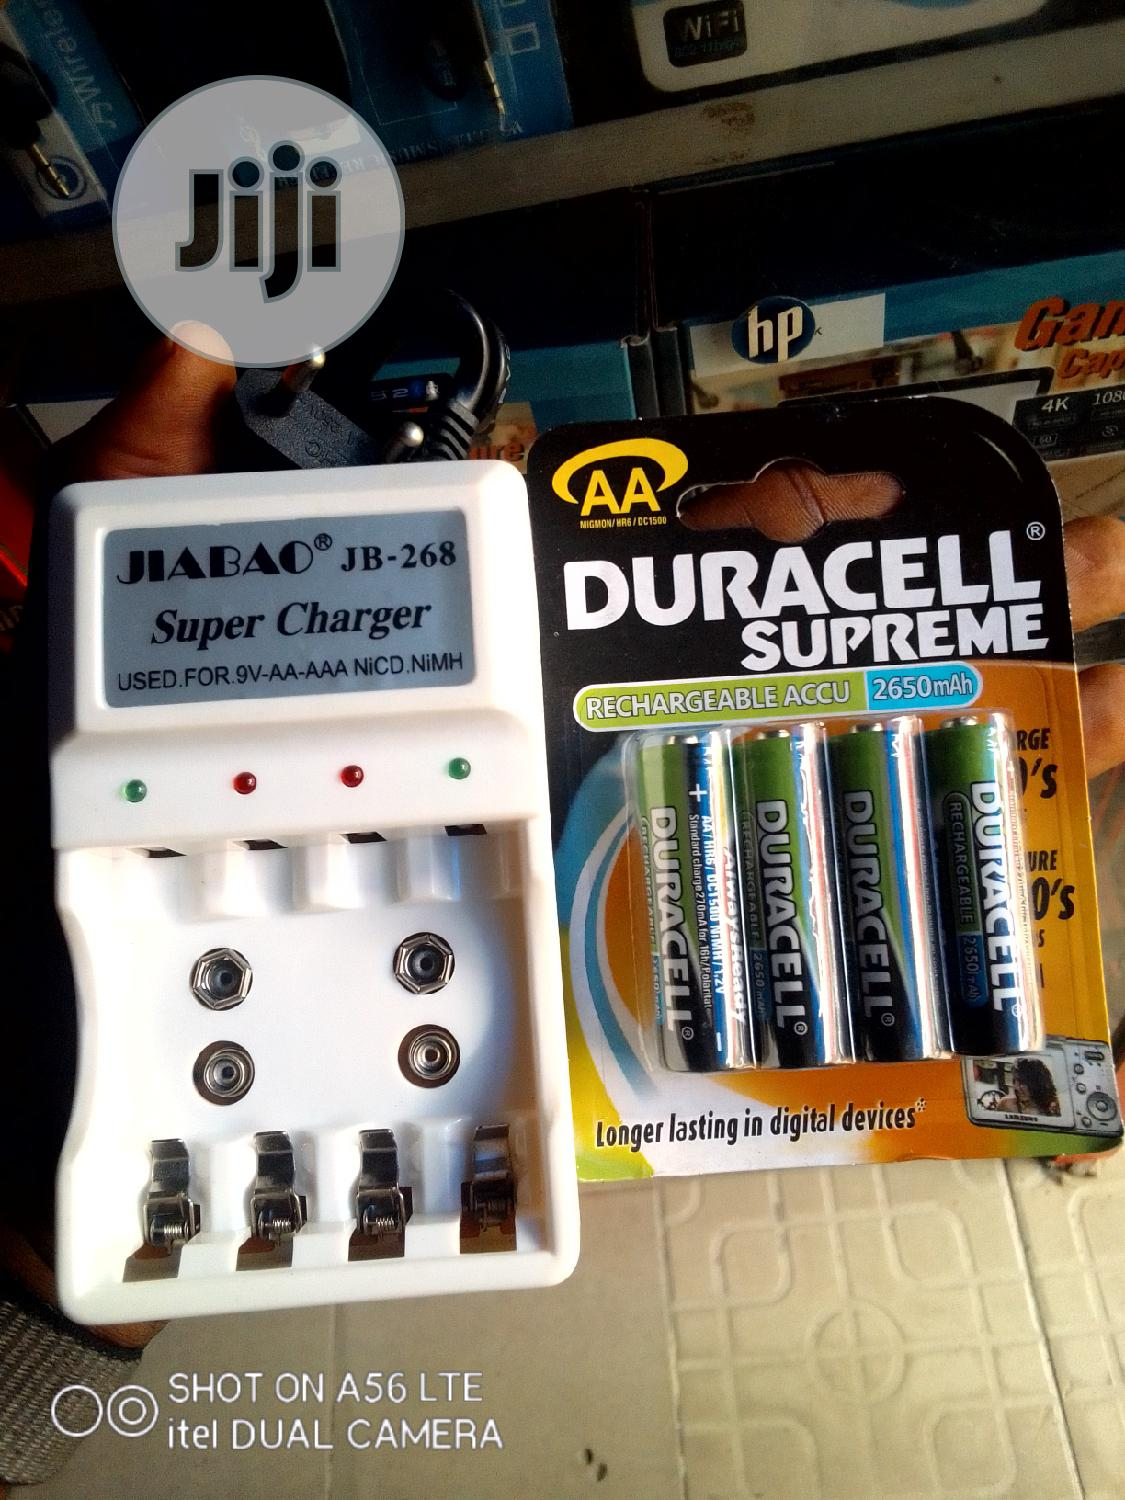 AA Duracell Rechargeable Battery + Charger